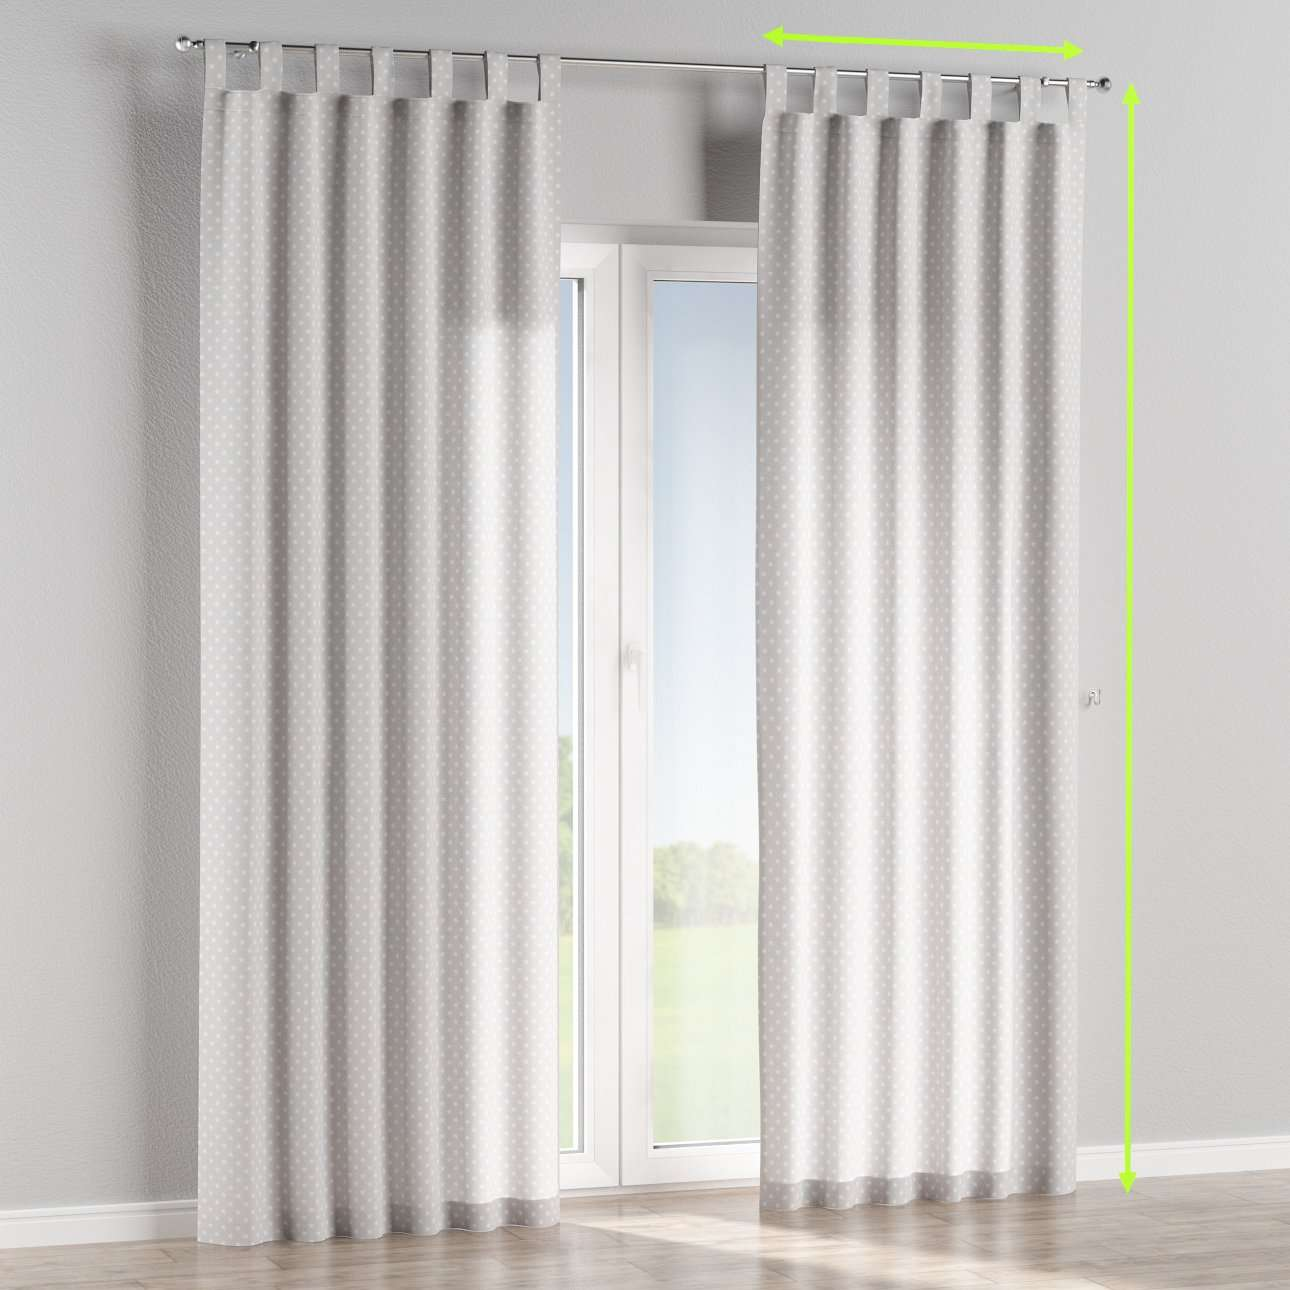 Tab top lined curtains in collection Ashley, fabric: 137-67